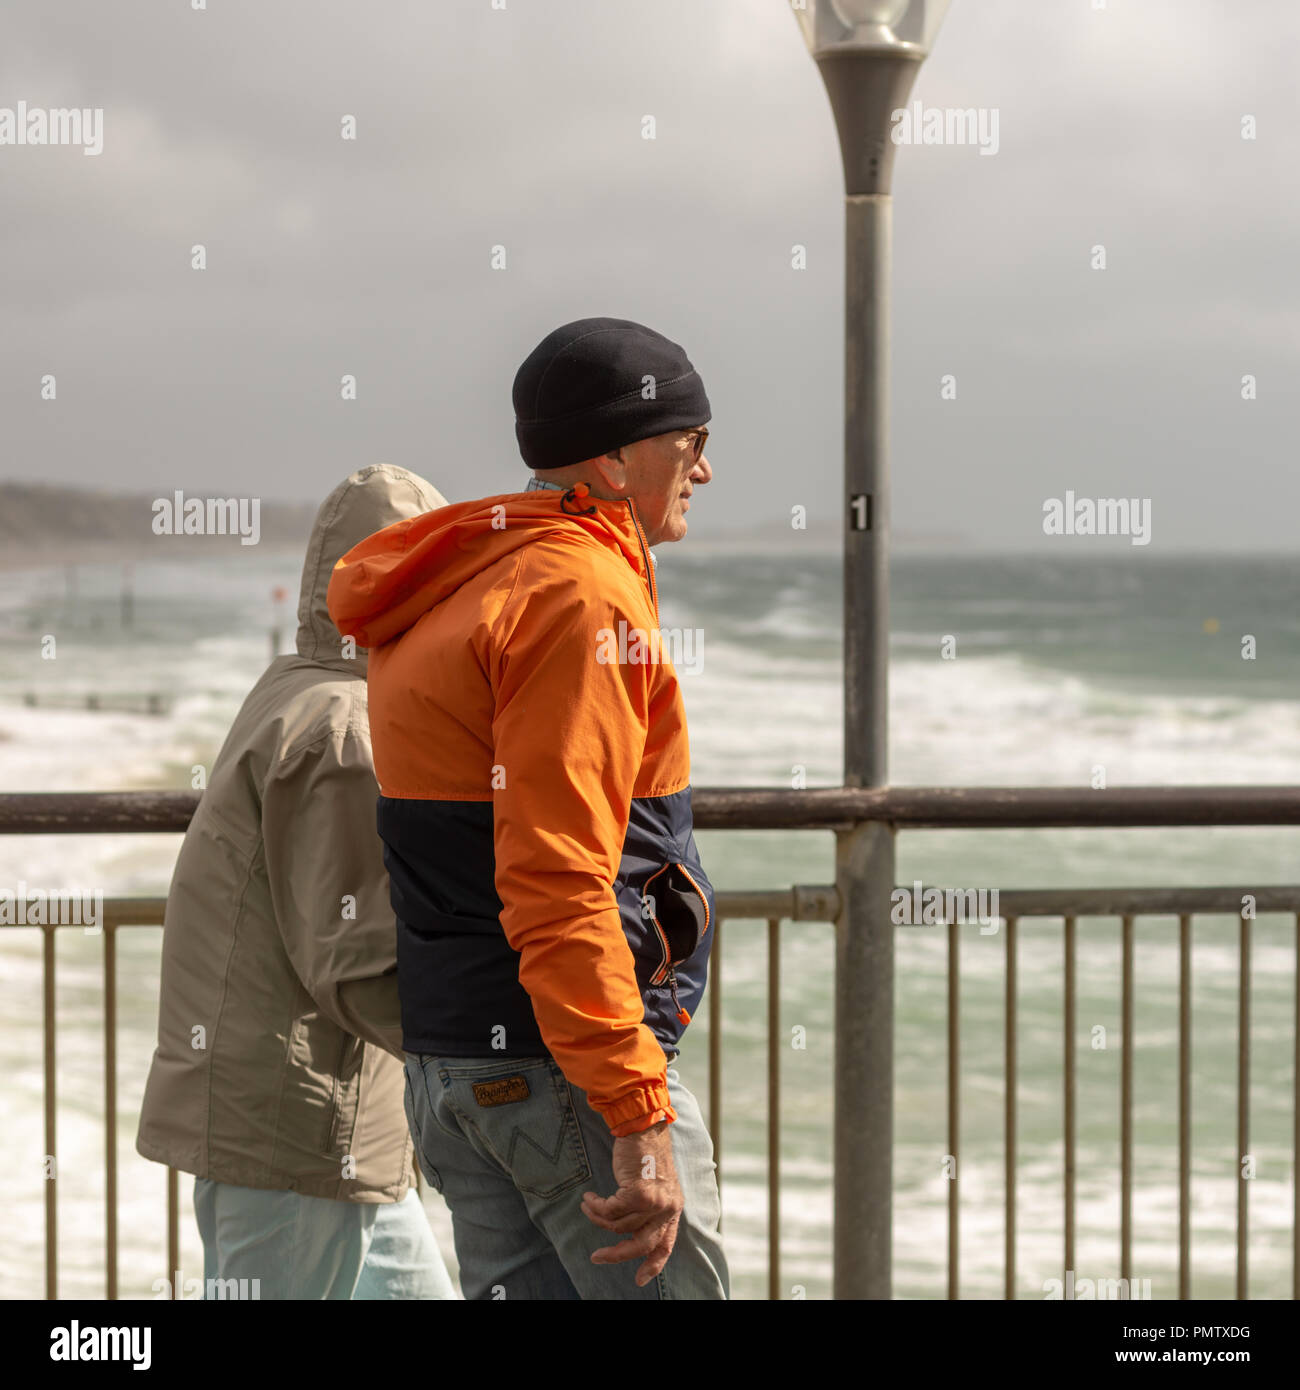 Boscombe, Bournemouth, Dorset, England, UK, September 2018, Weather: Storm Ali, the first named storm of the autumn, brings strong winds gusting to over 50mph to the south coast early afternoon. A couple walking on the pier are dressed for the conditions. - Stock Image